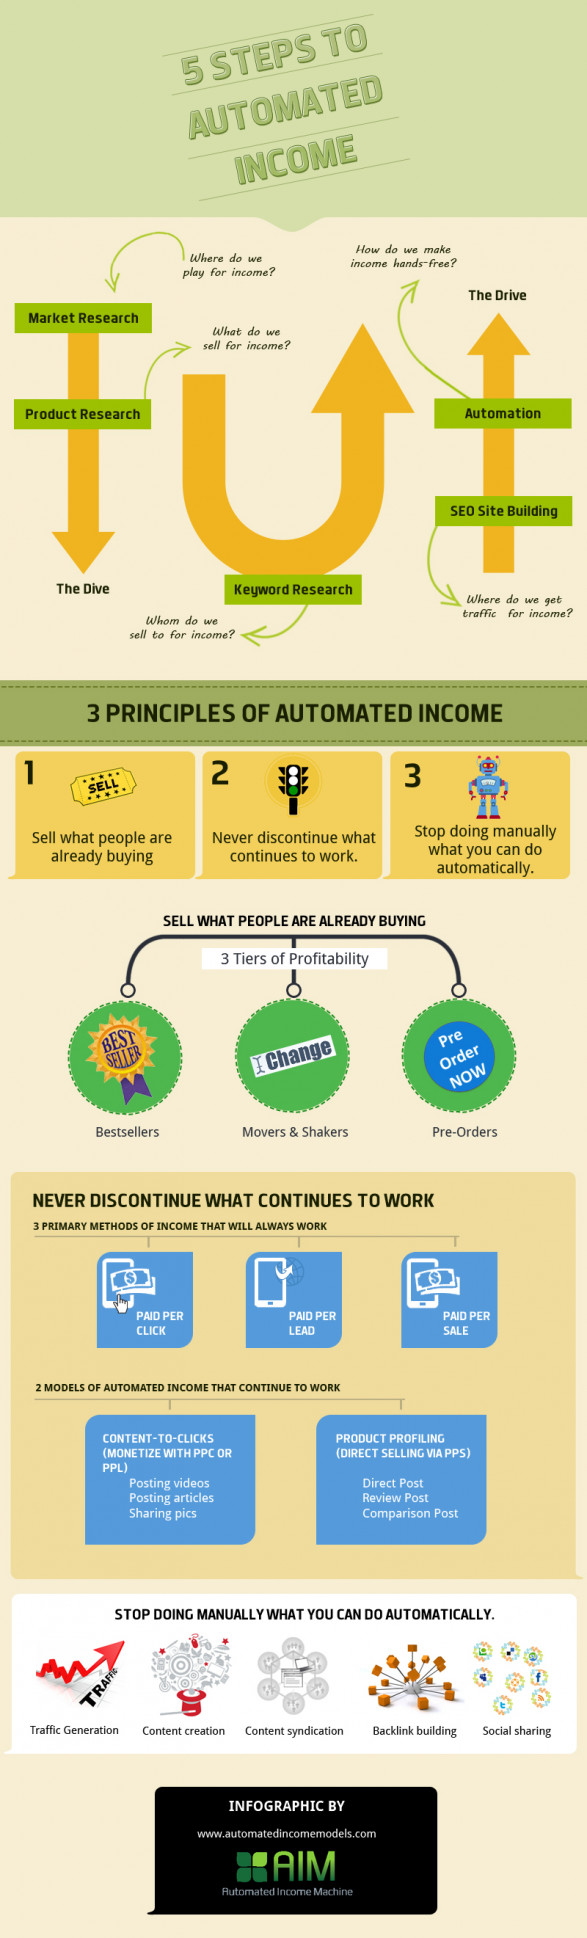 5 Steps To Automated Income